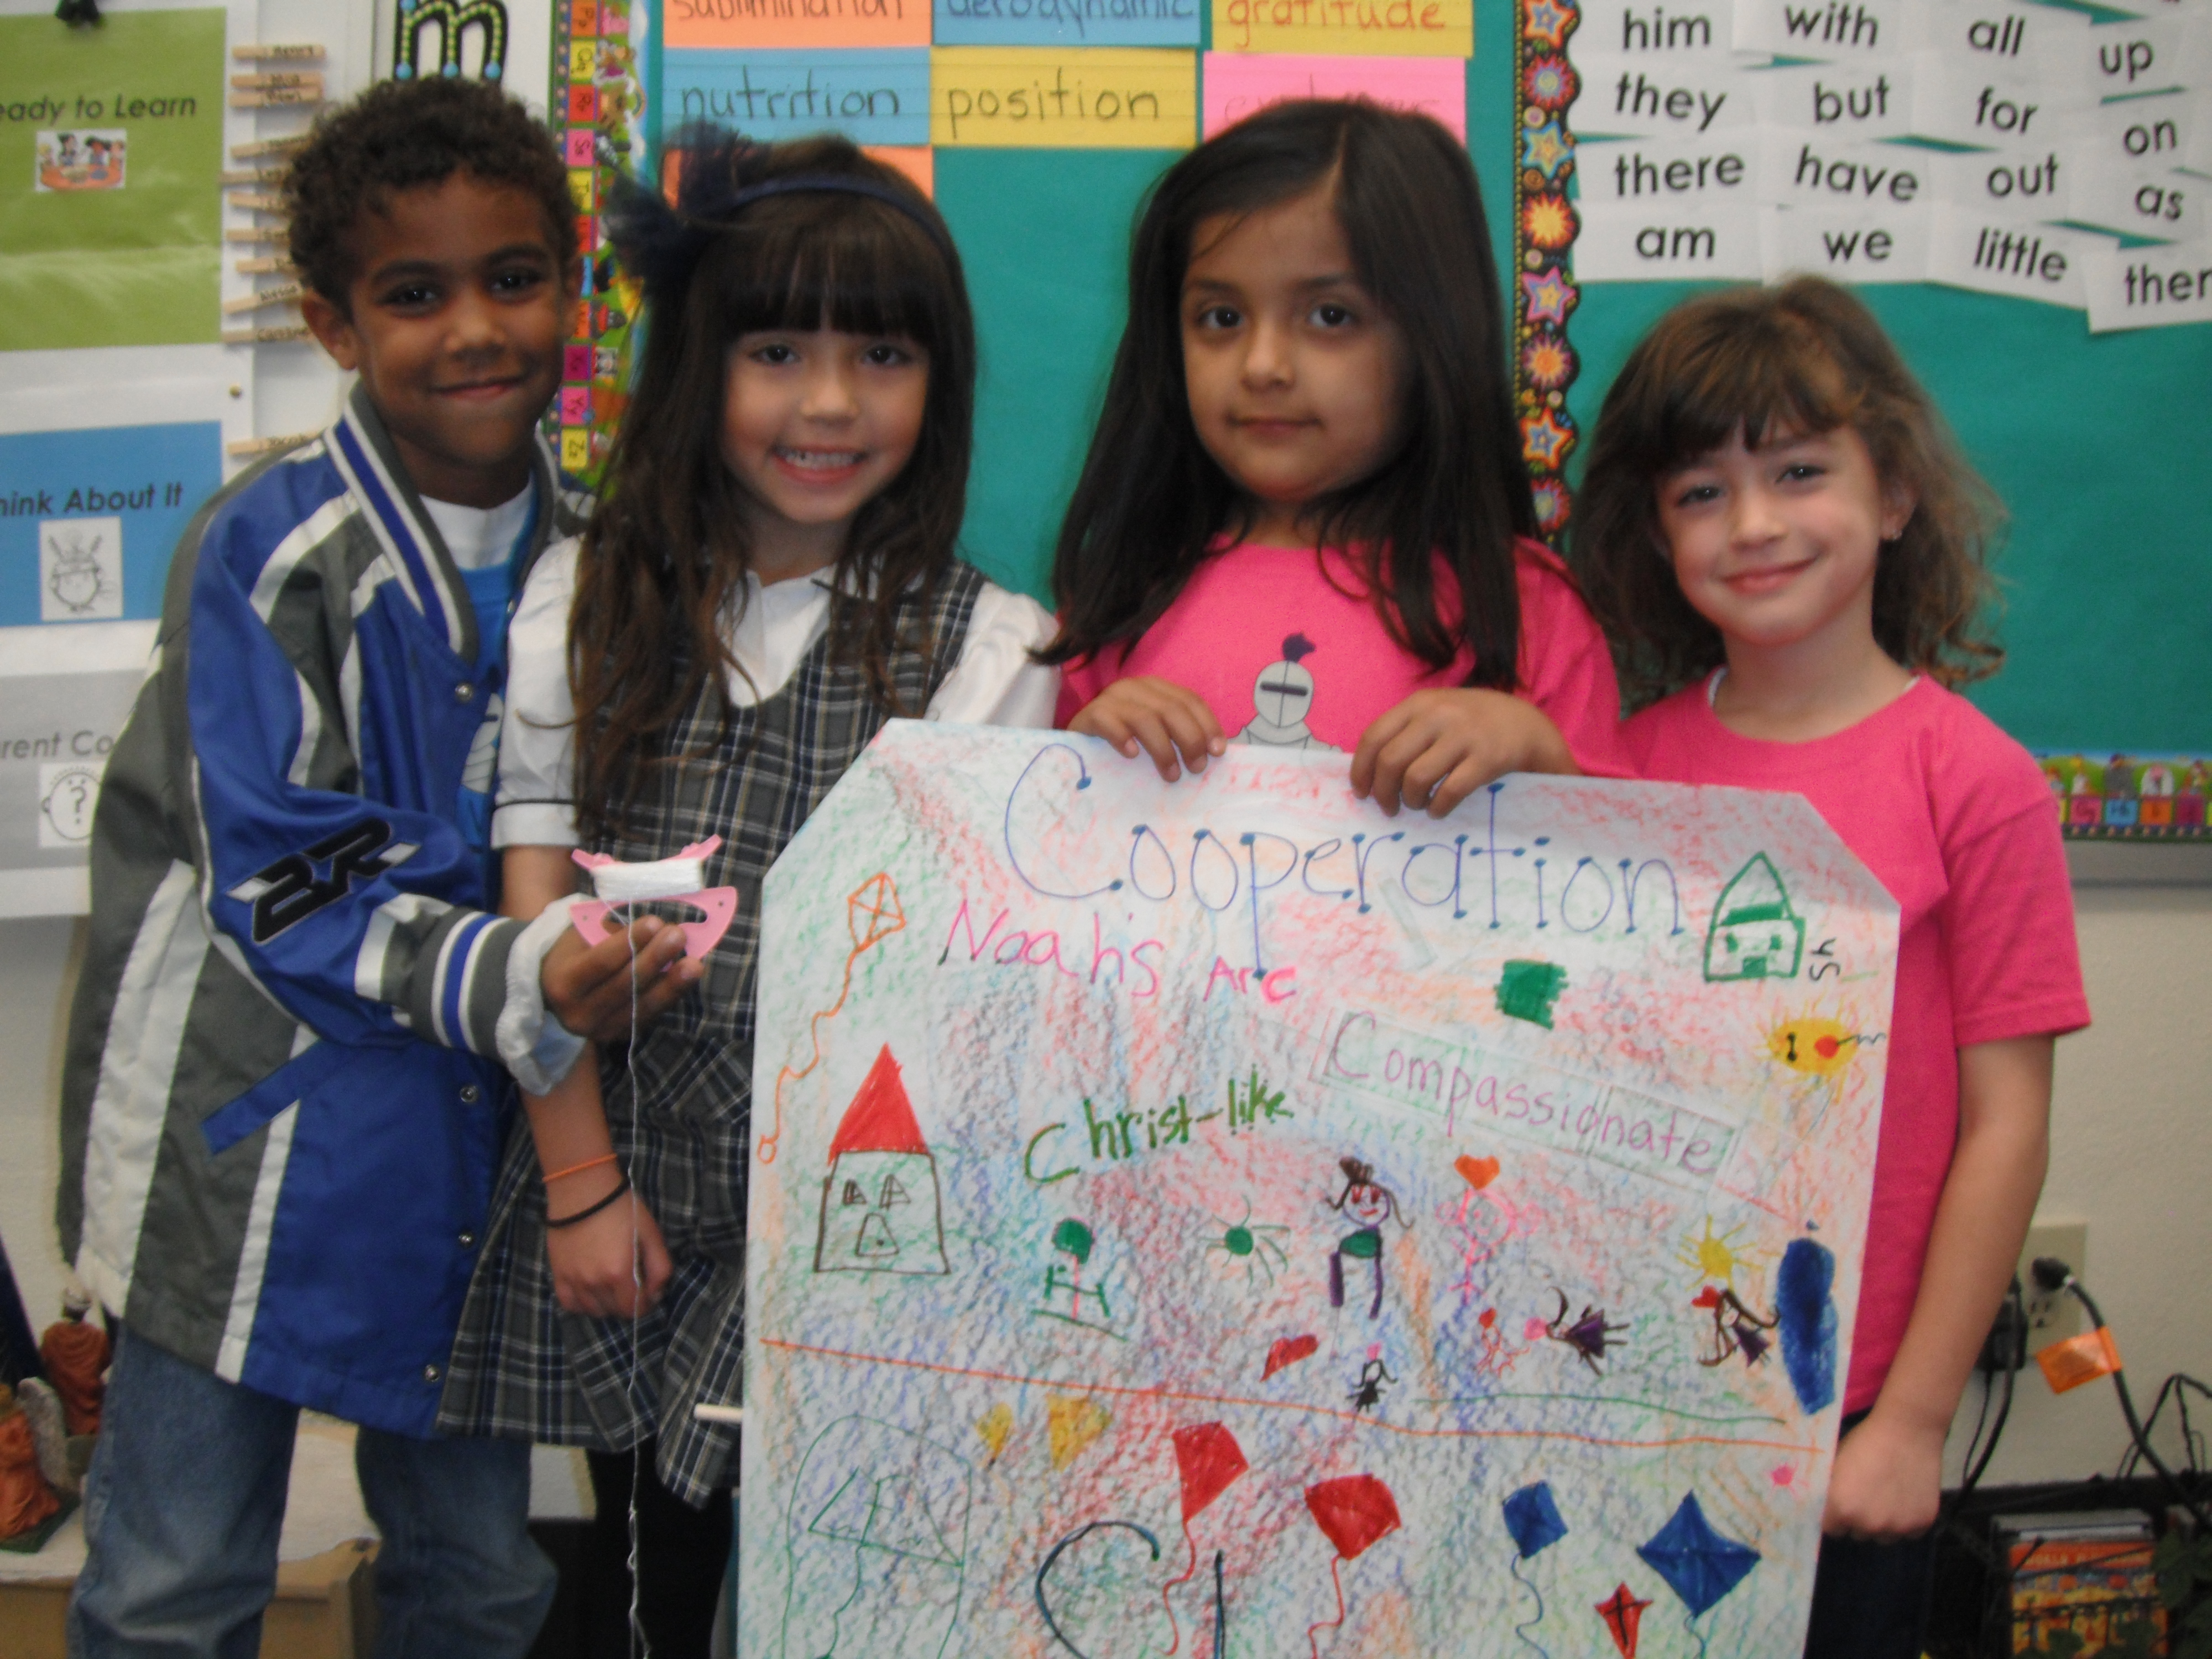 Young students display their invention idea